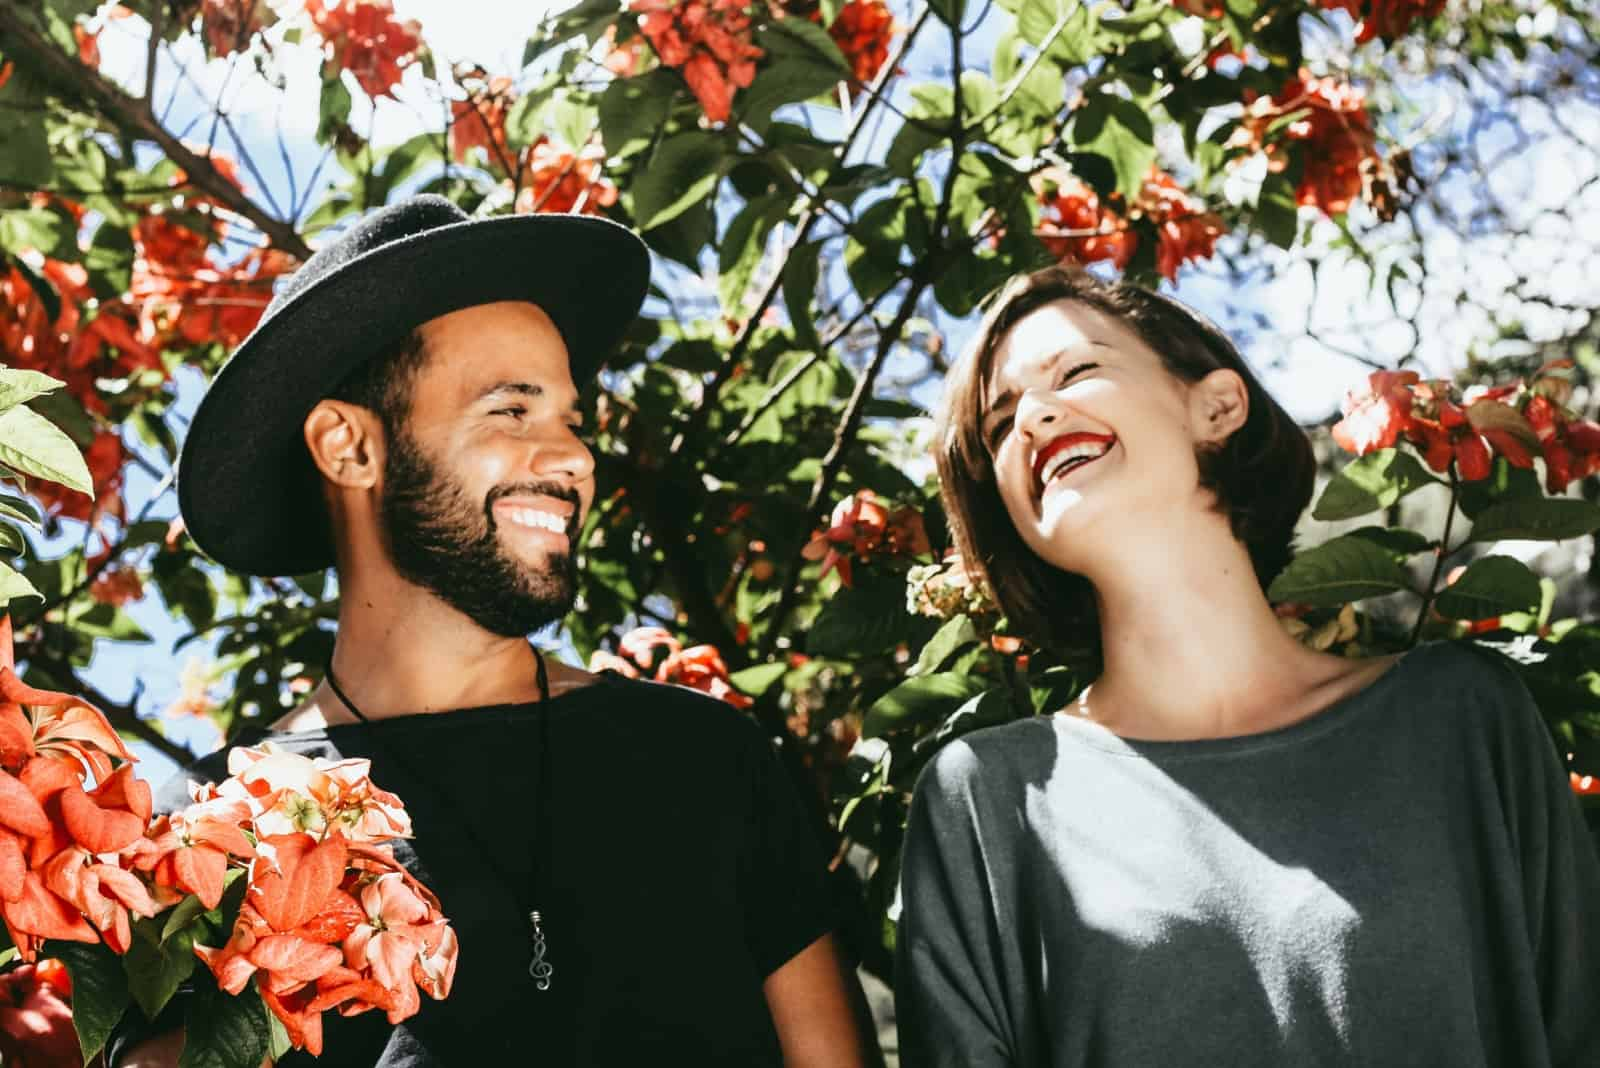 man and woman laughing while standing near flowers